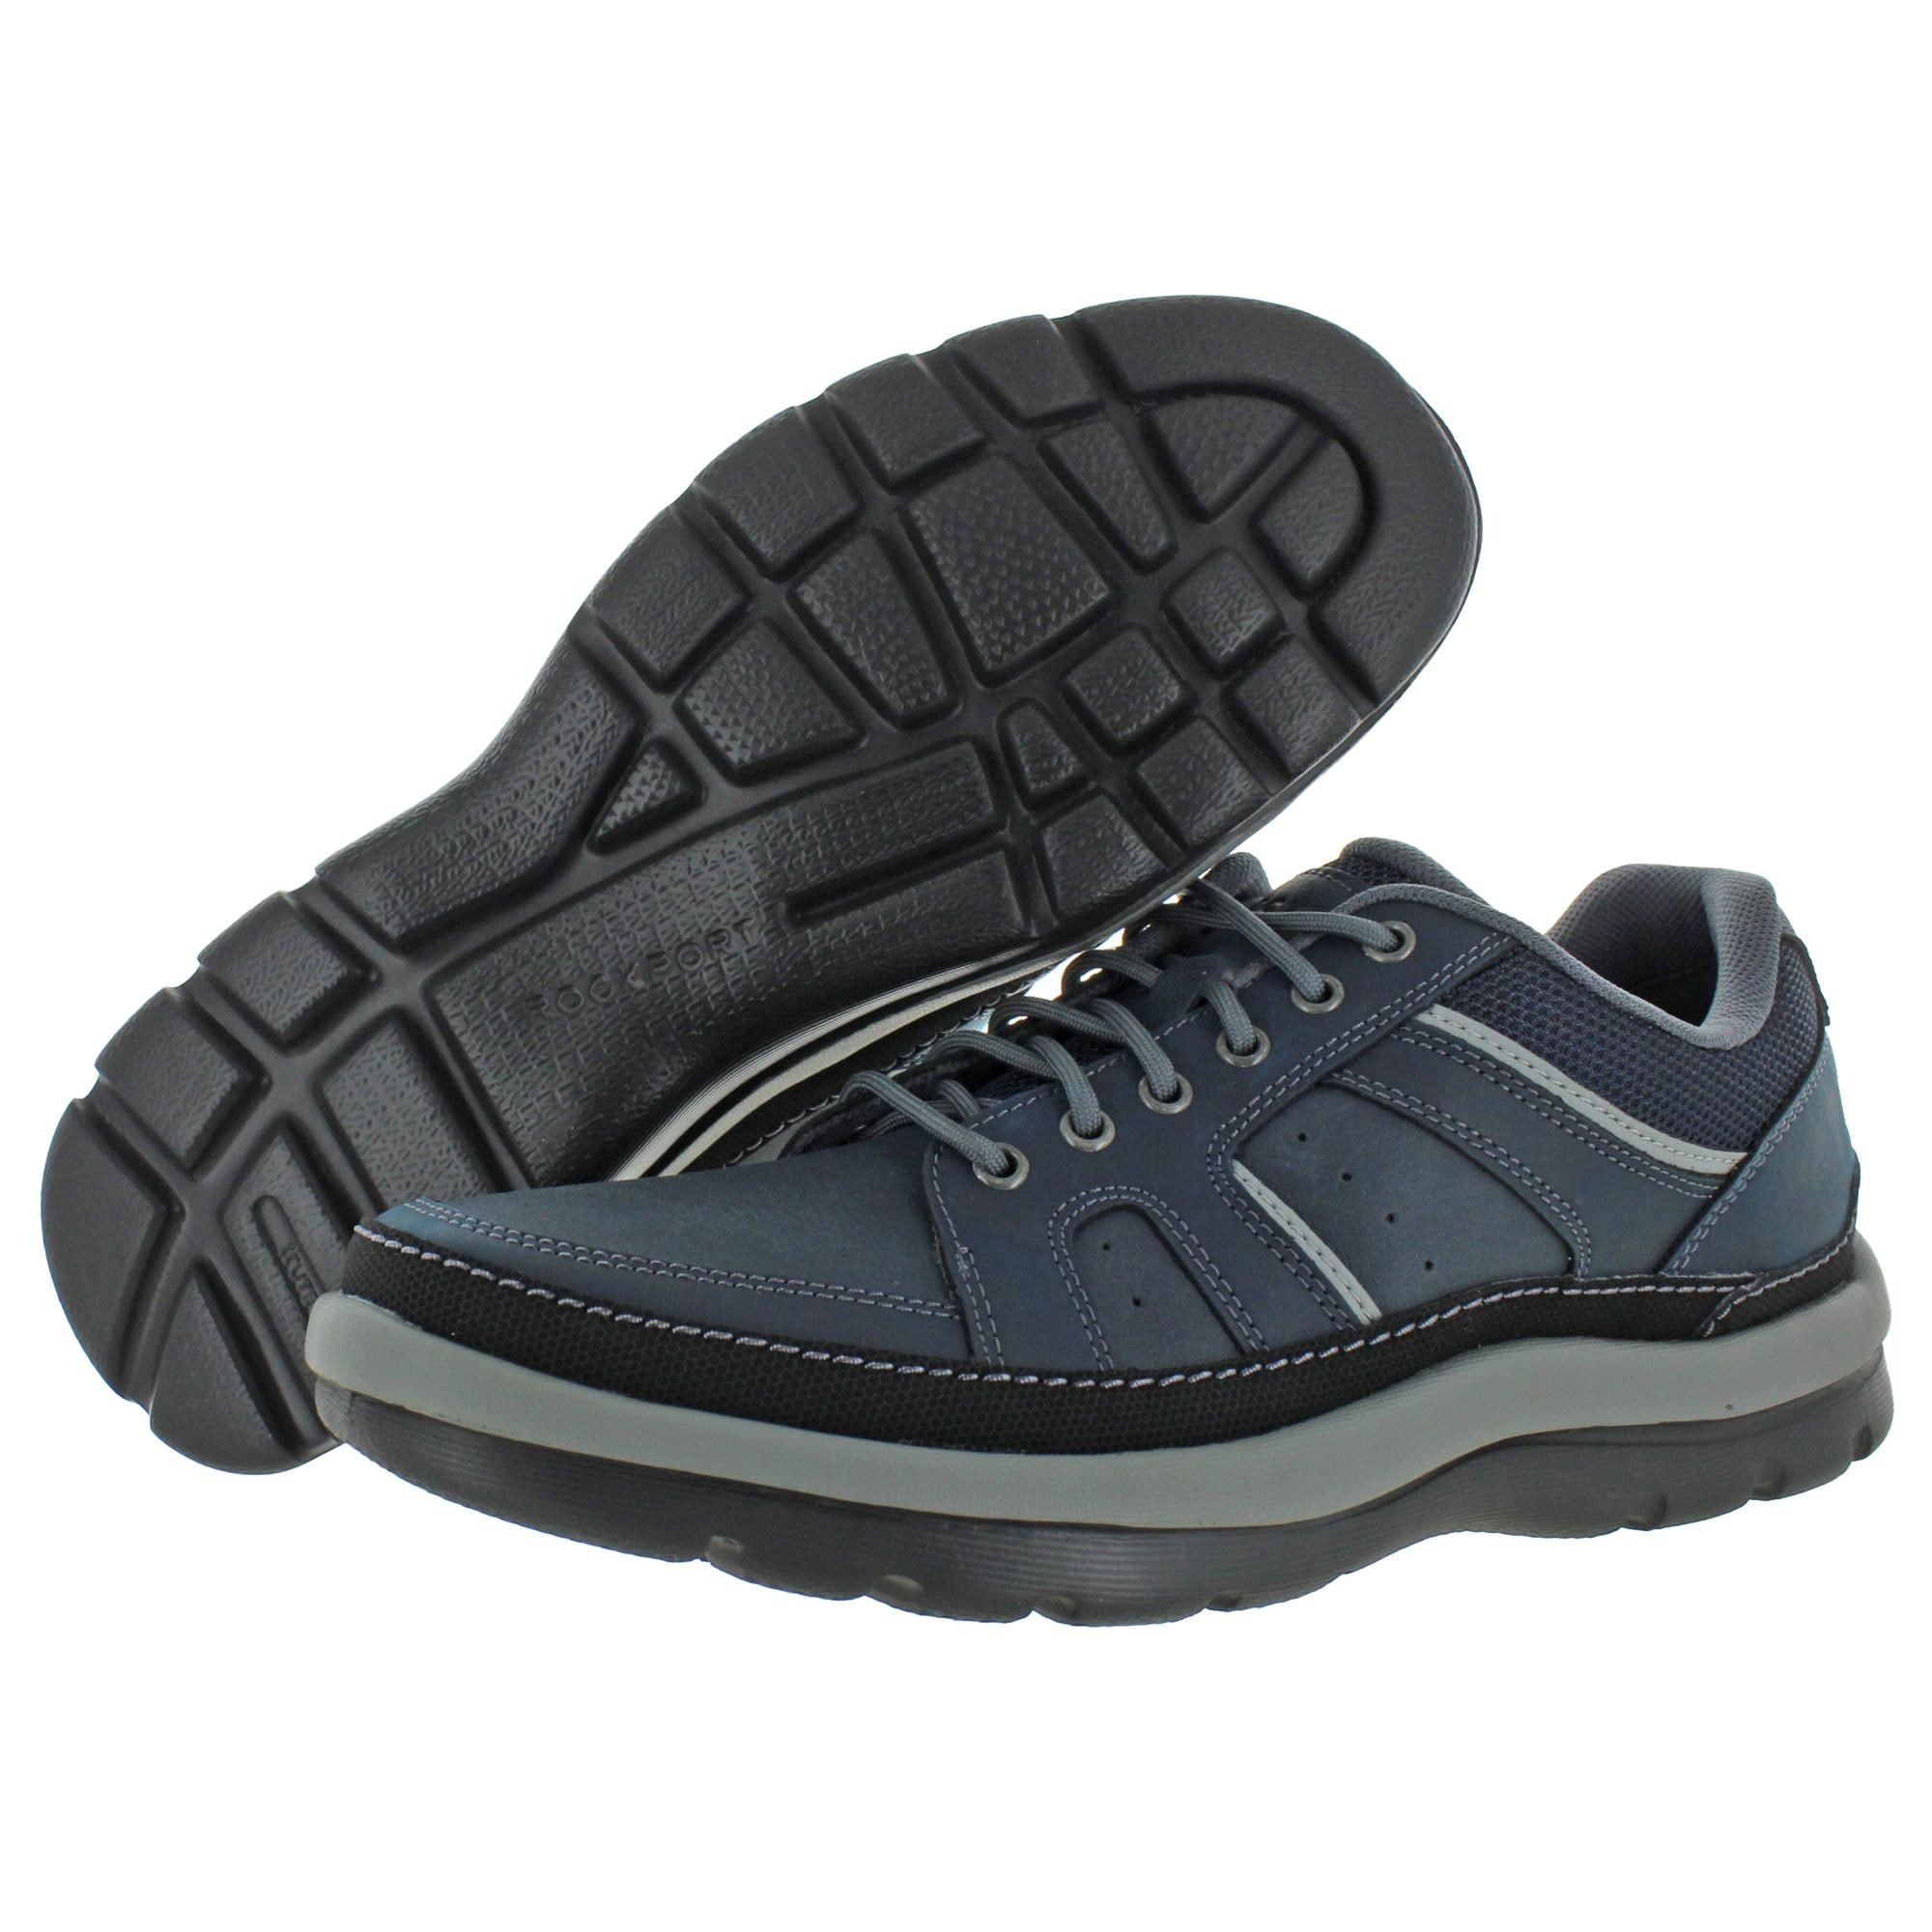 Rockport Mens Gyk Mdg Fw Casual Shoes